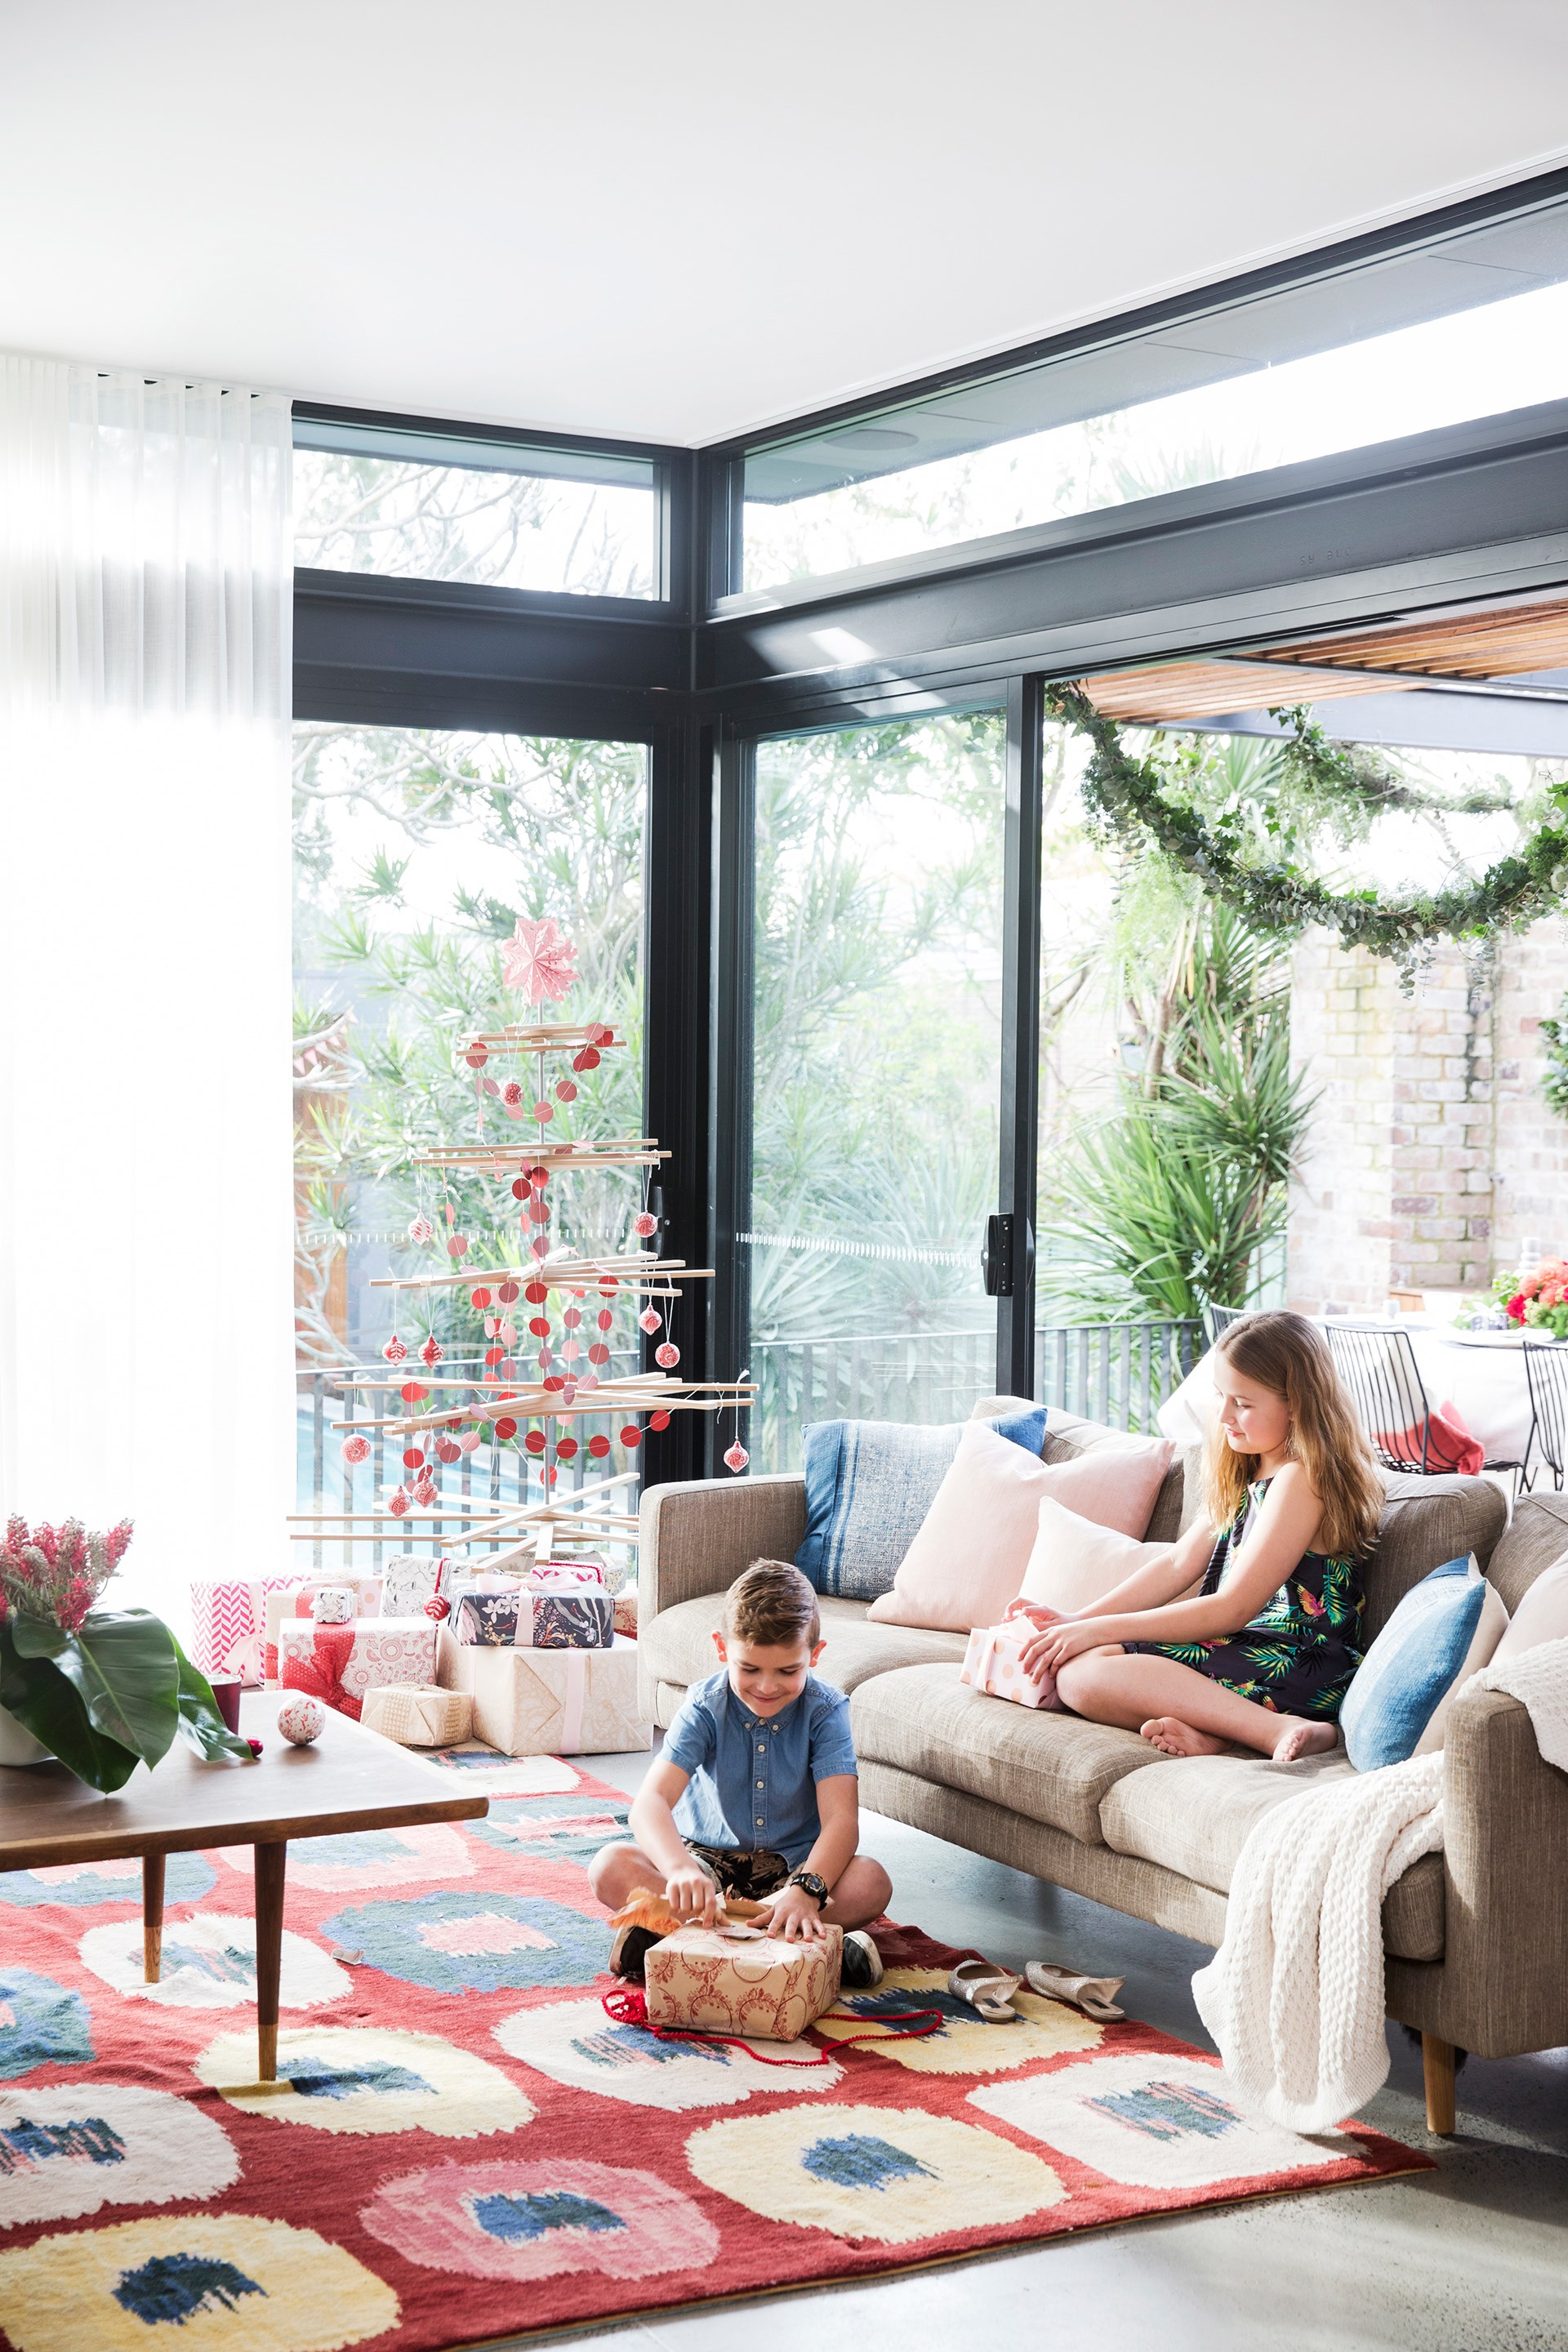 """Colourful decorations and festive bouquets give this [florist's renovated bungalow](http://www.homestolove.com.au/inside-a-florists-renovated-bungalow-festooned-with-festive-flowers-4498